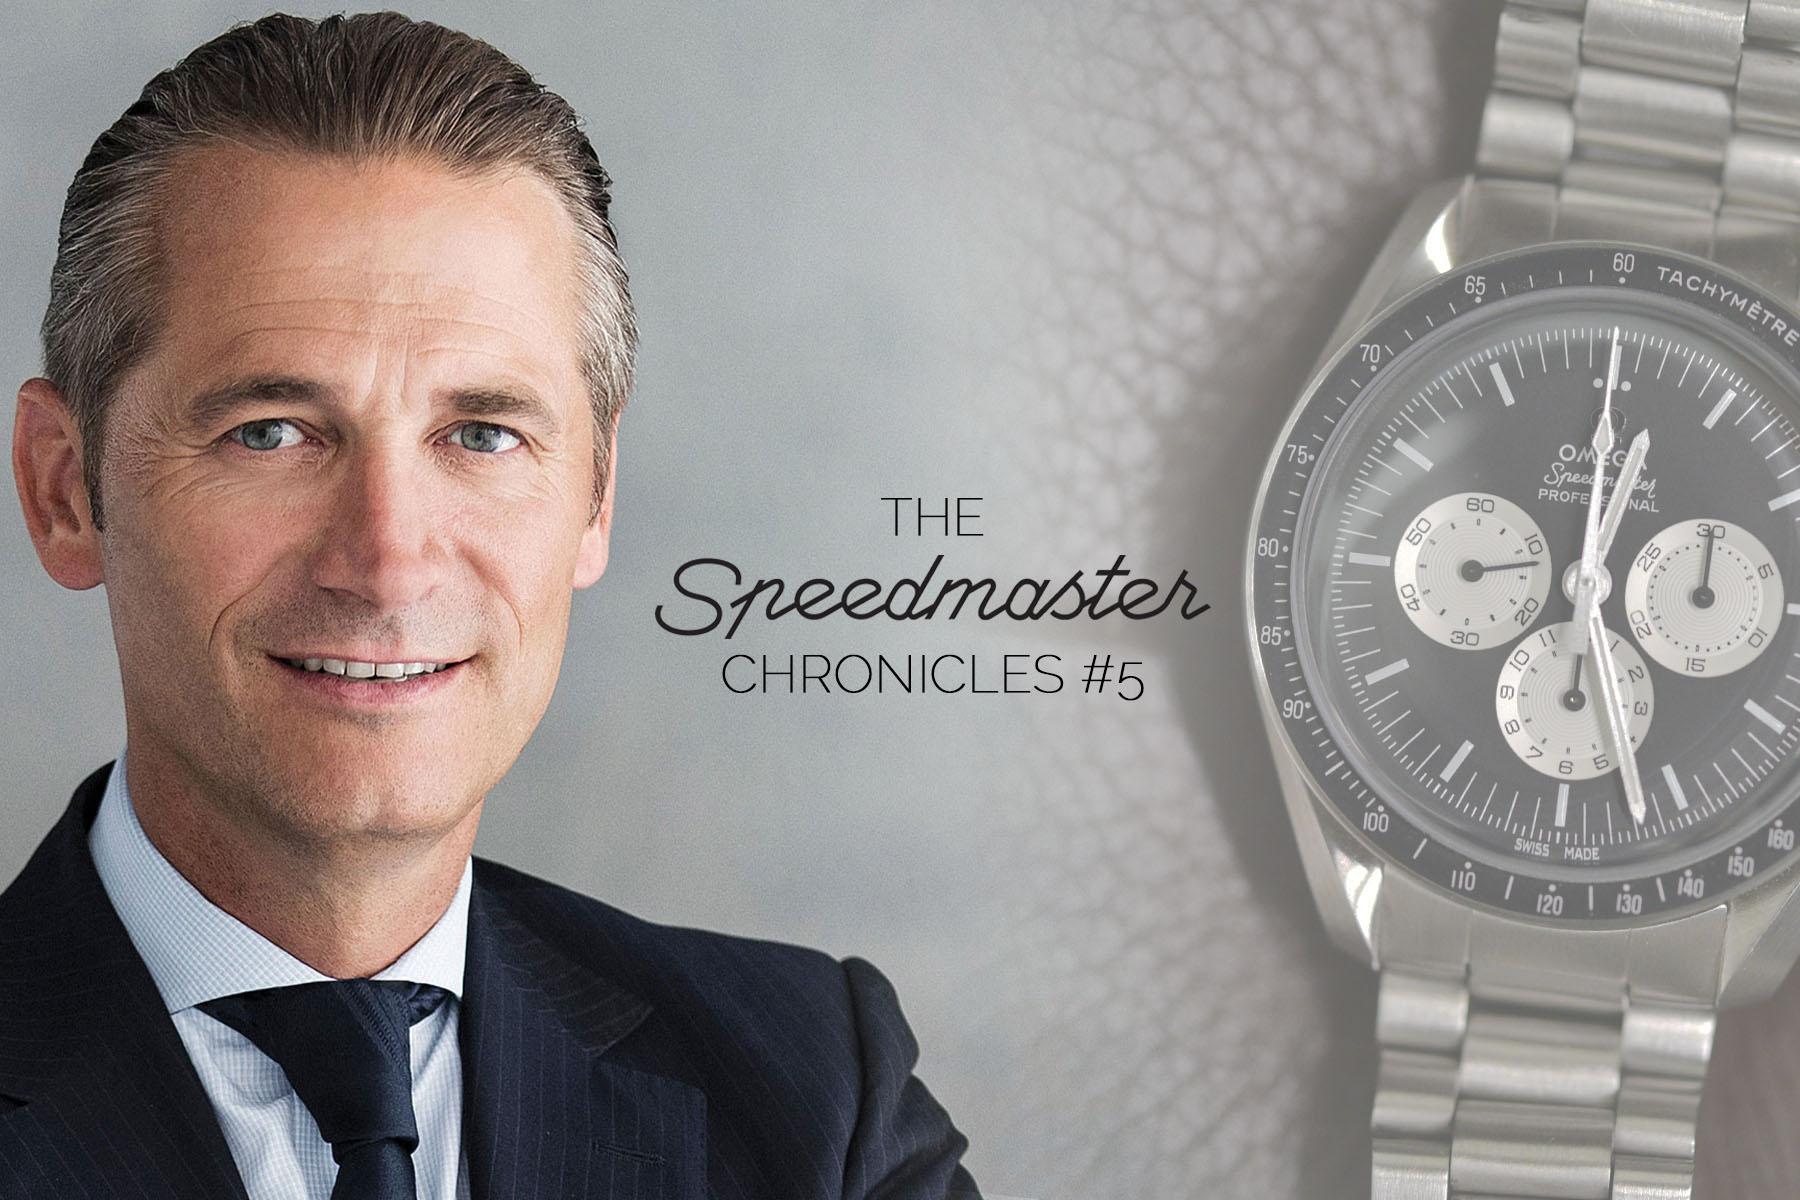 The Speedmaster Chronicles Episode 5 - Raynald Aeschlimann, President and CEO of Omega Watches